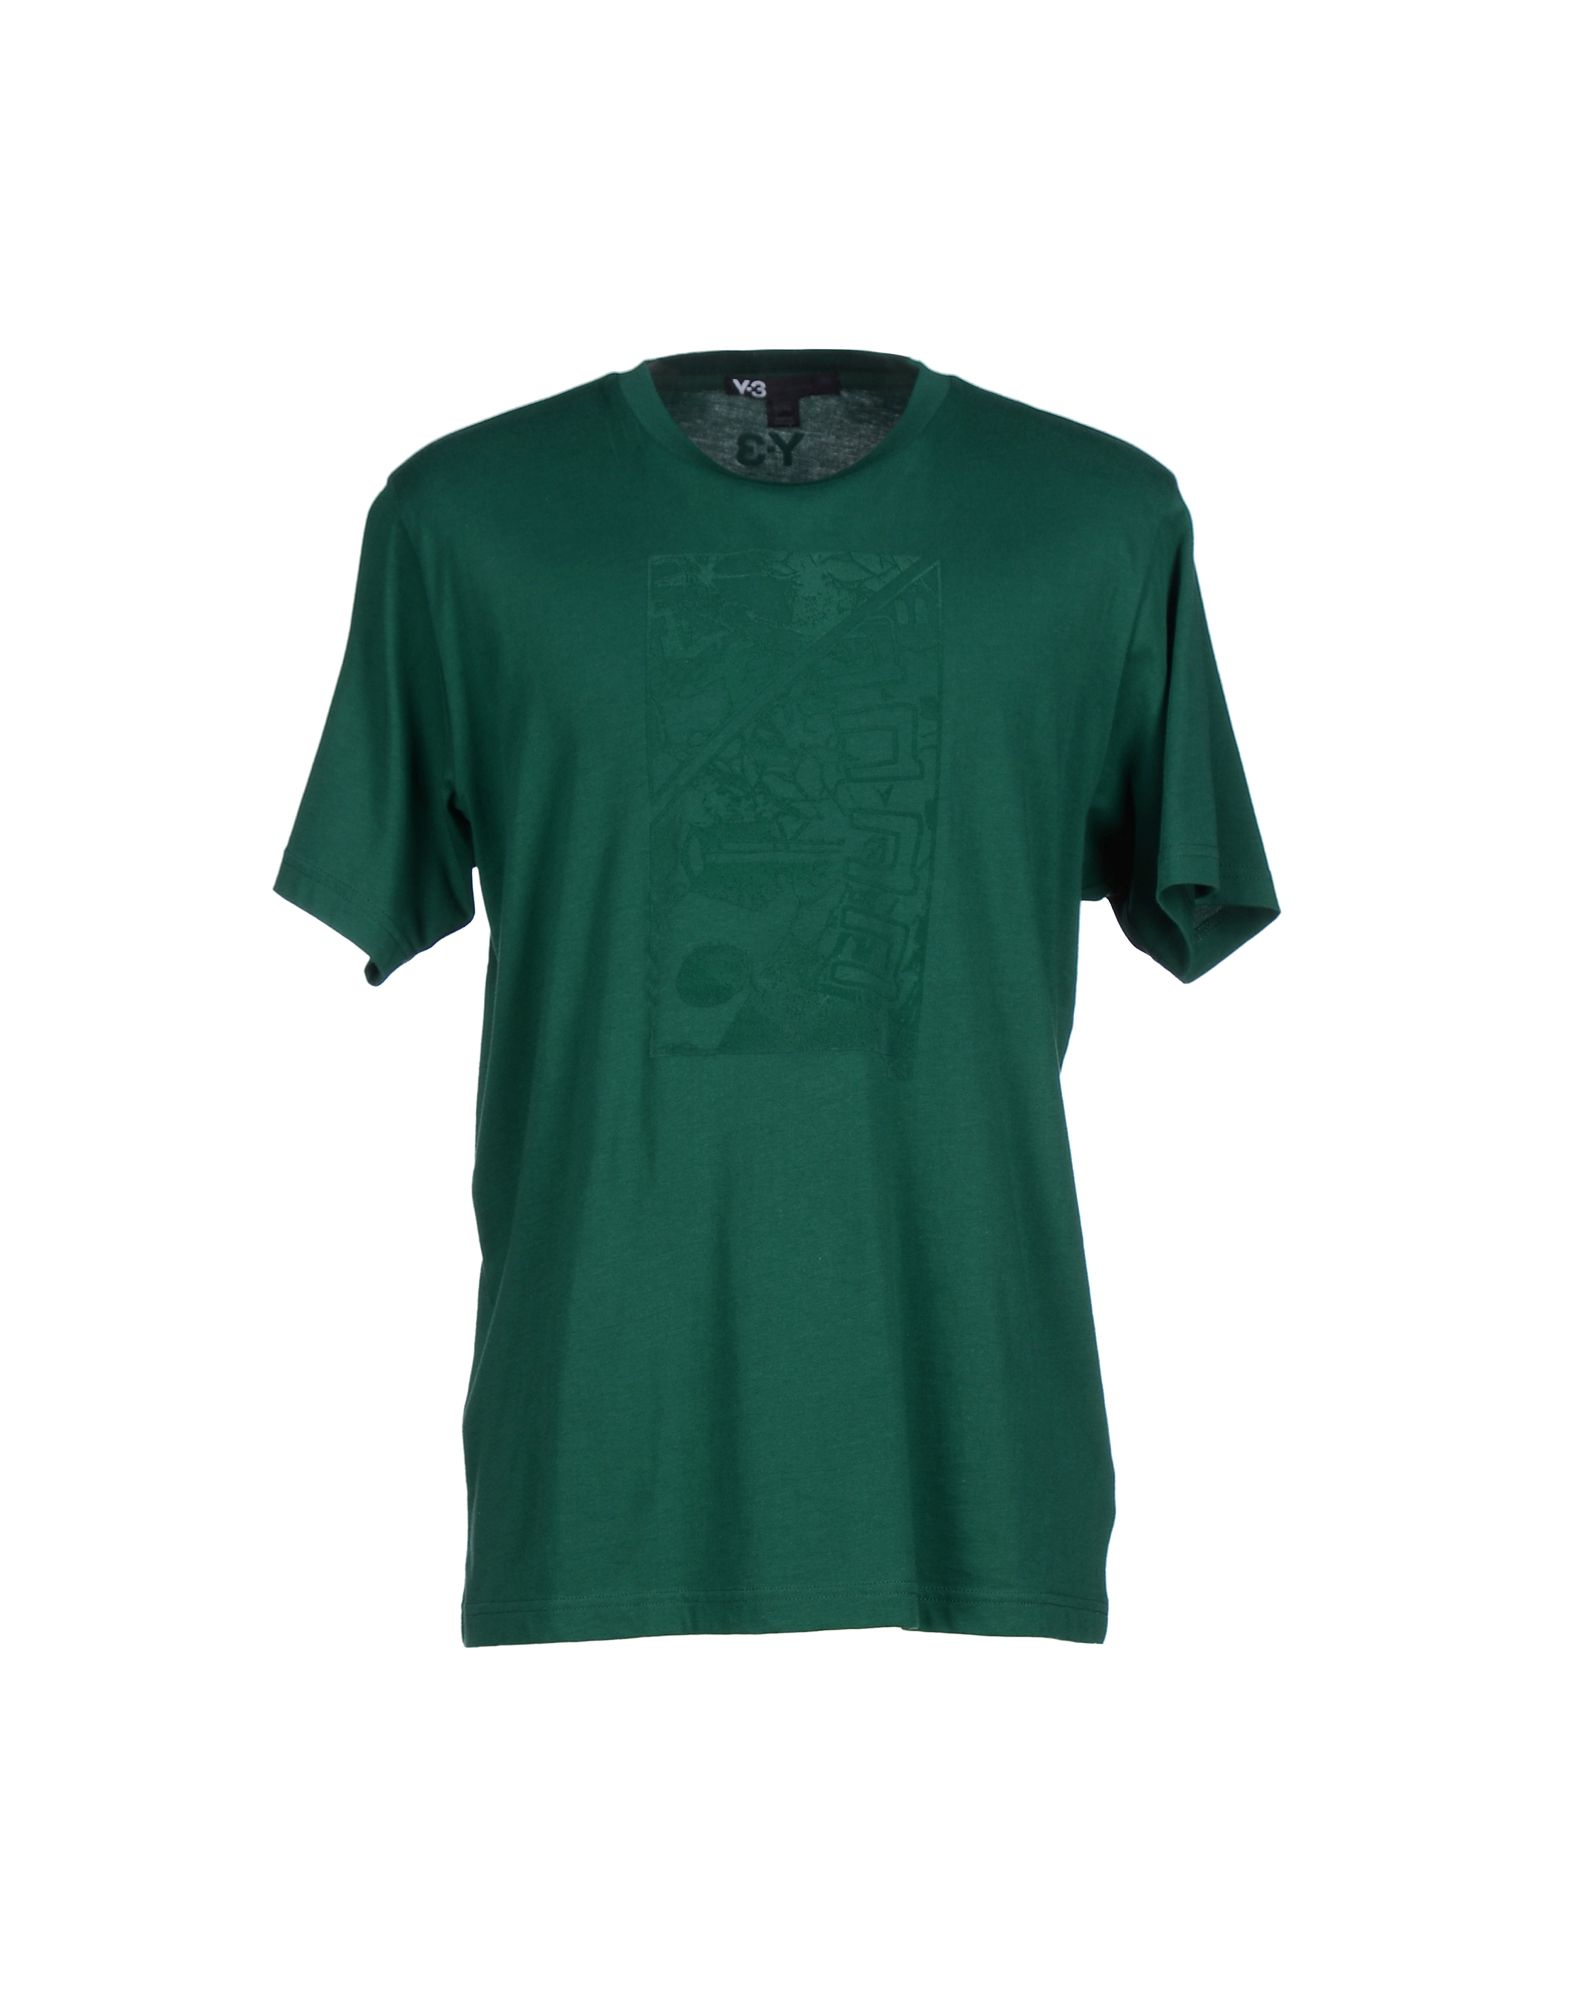 Y 3 t shirt in green for men emerald green save 42 lyst Emerald green mens dress shirt